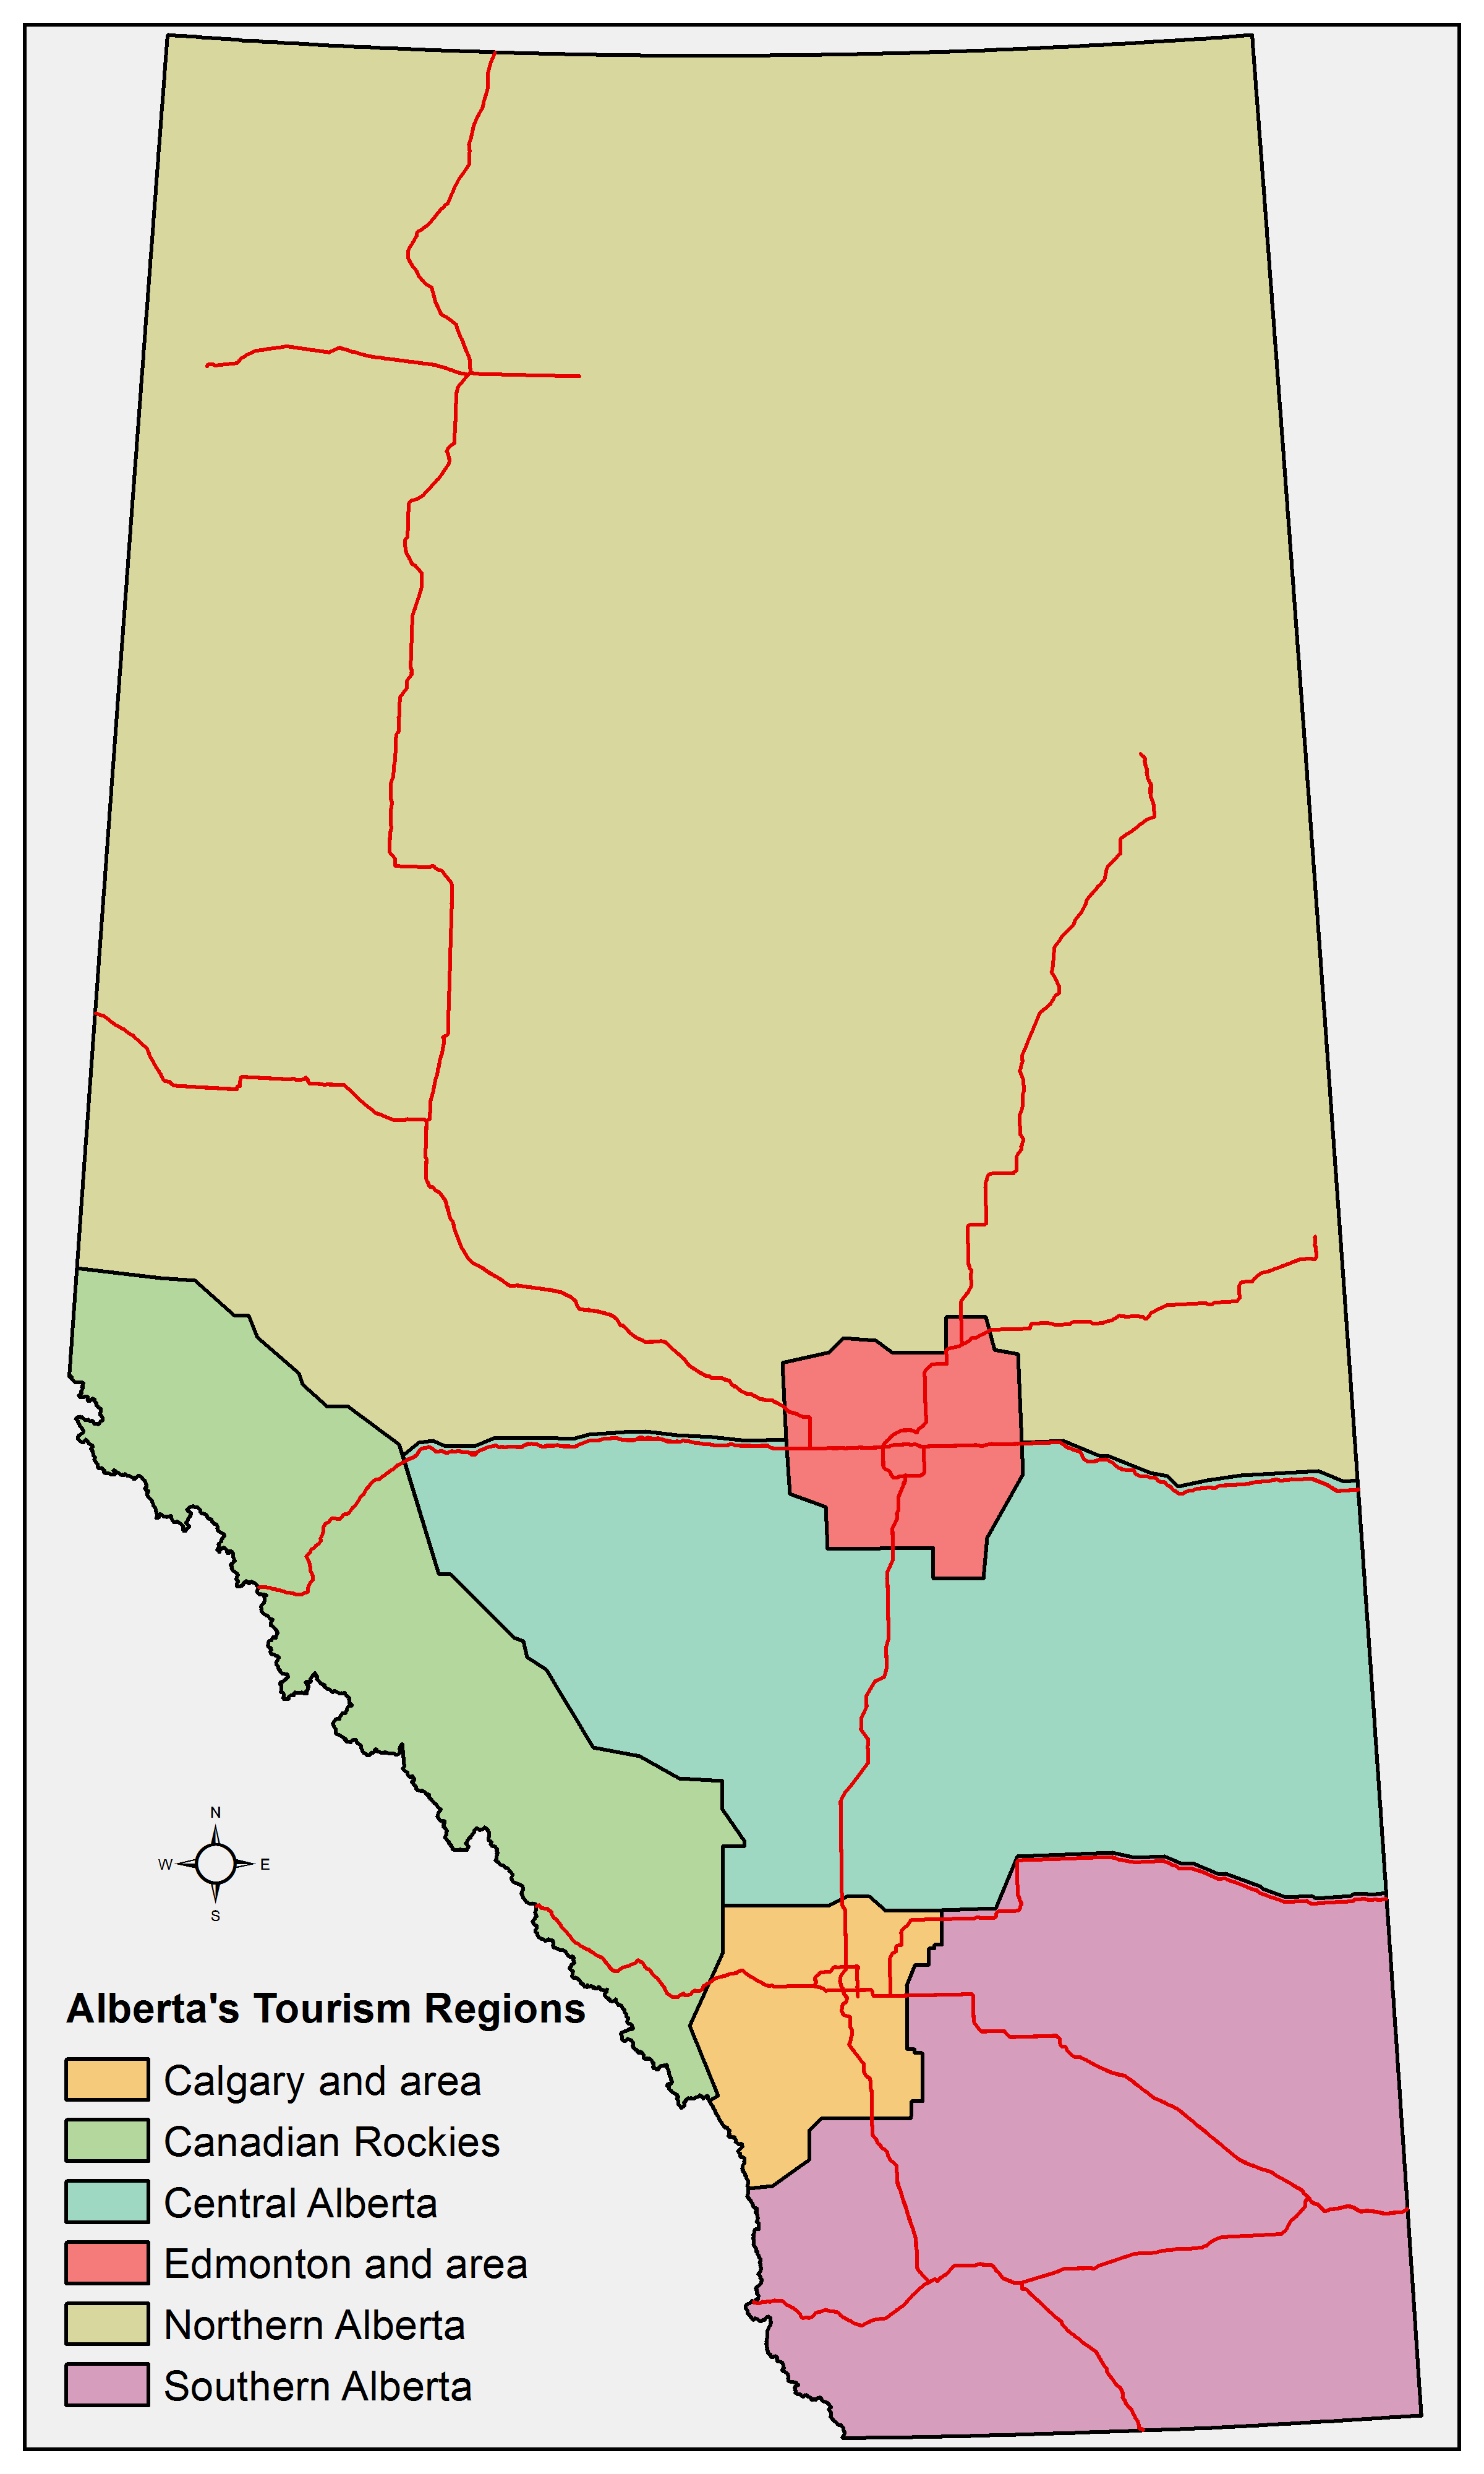 Alberta's tourism regions and highways that form part of